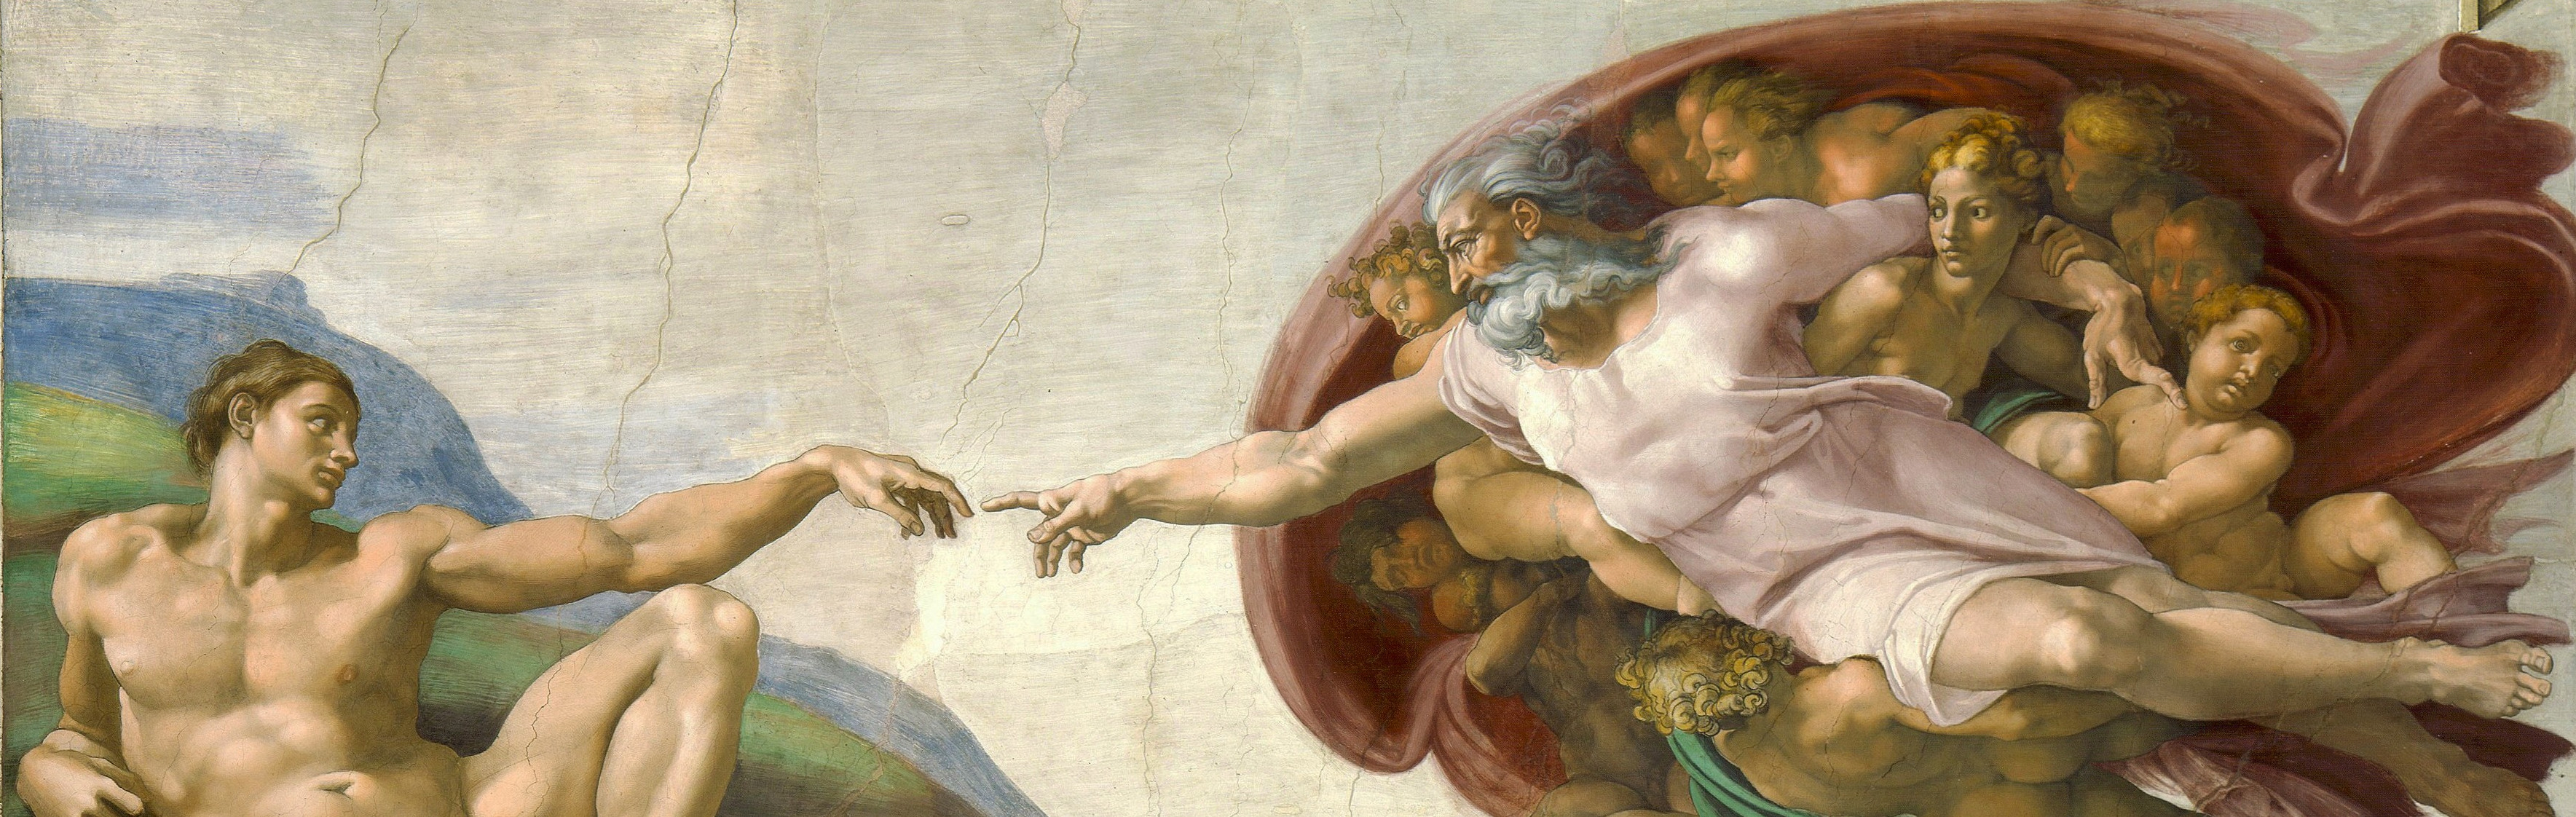 michelangelo_creation